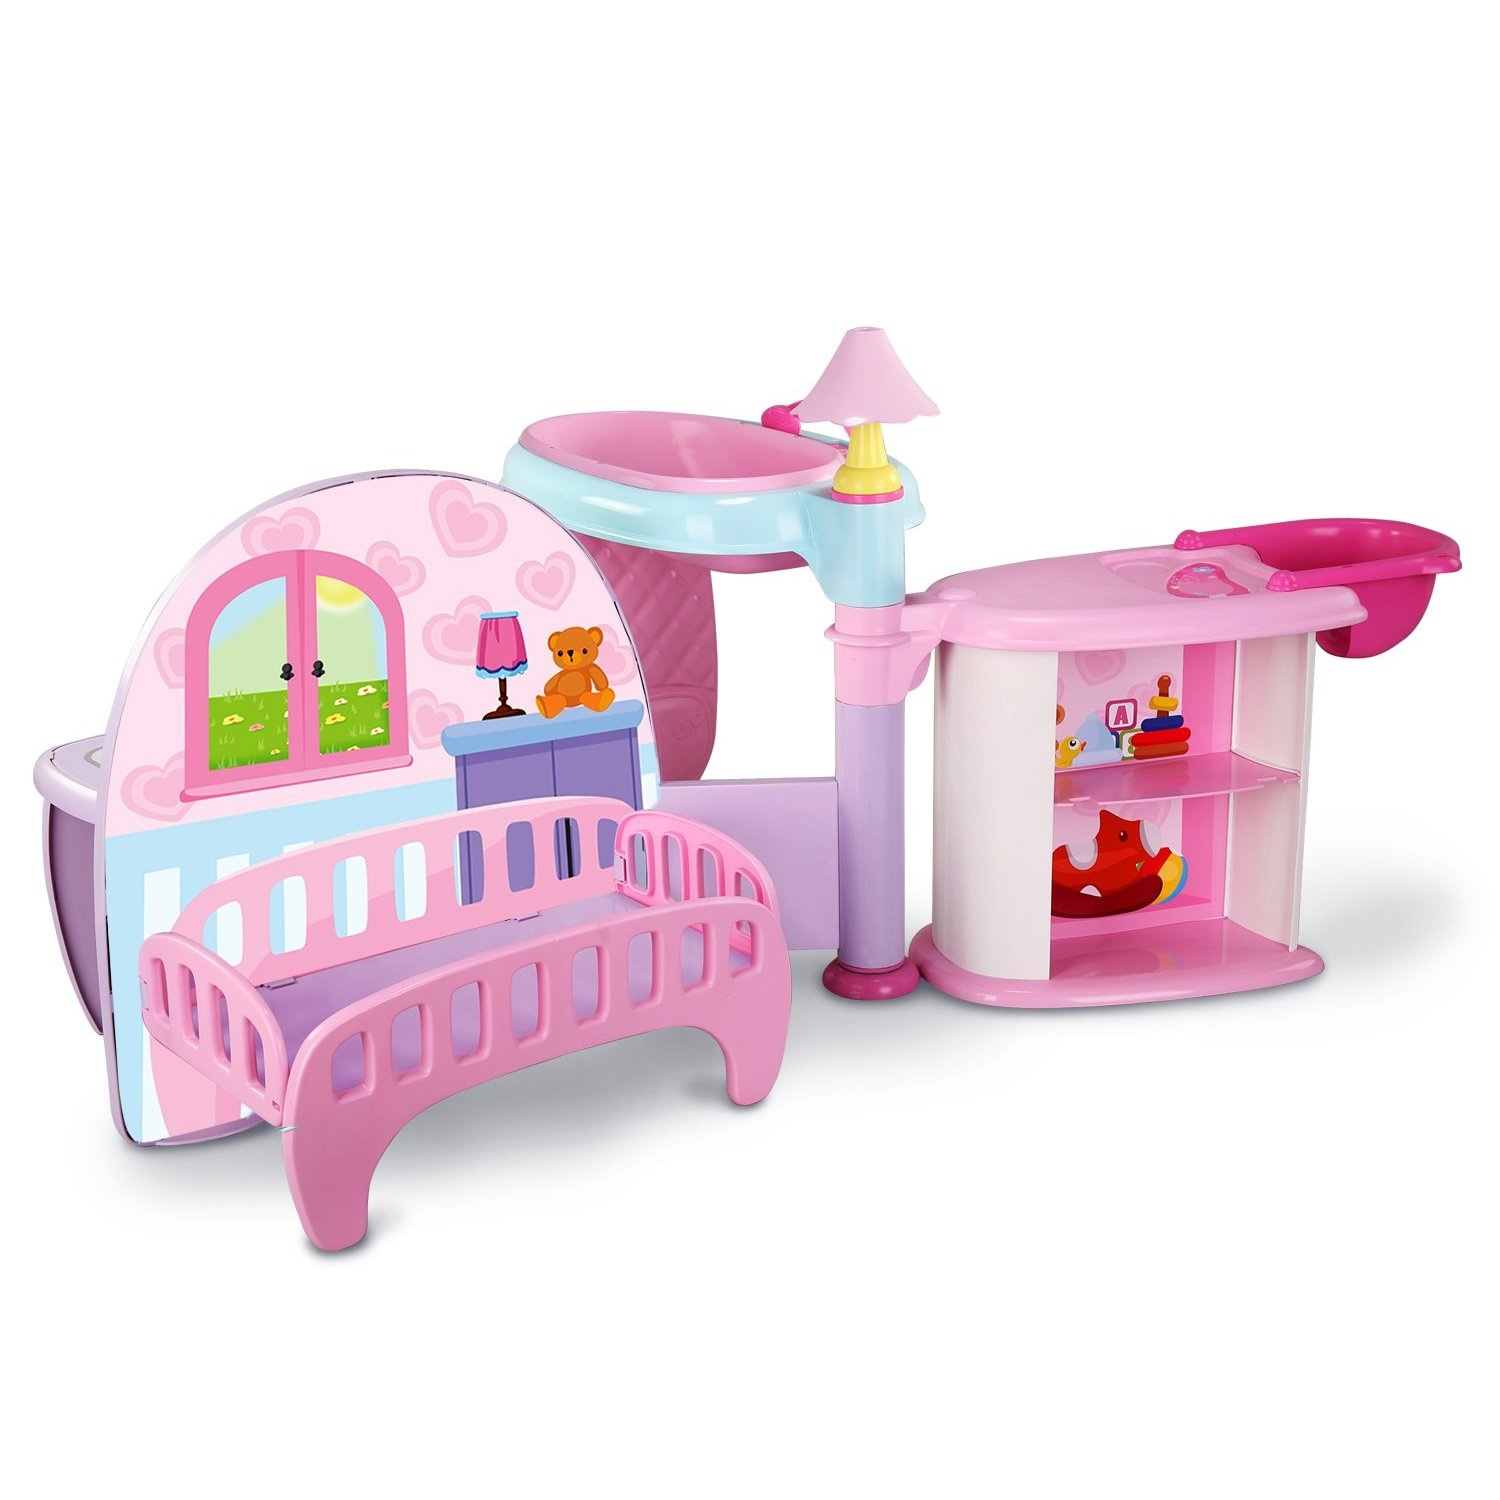 Little Mommy All In One Nursery By Tolly Tots   Shop Online For Toys In  Australia